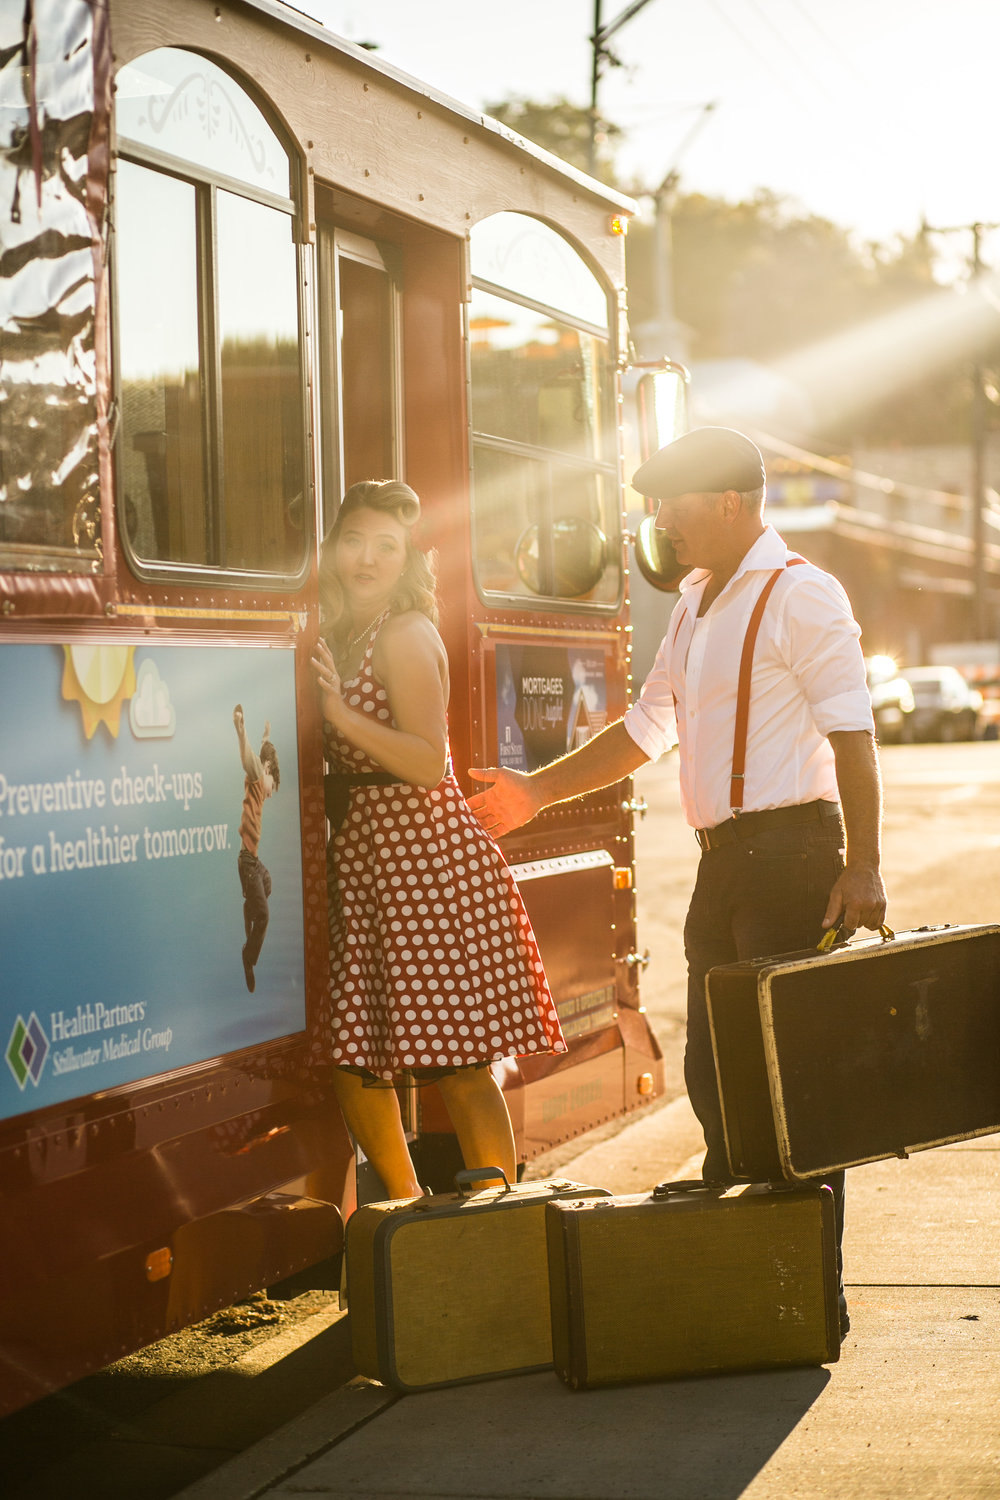 Vintage 1940's looking couple poses in front of Stillwater Trolley in the sunlight